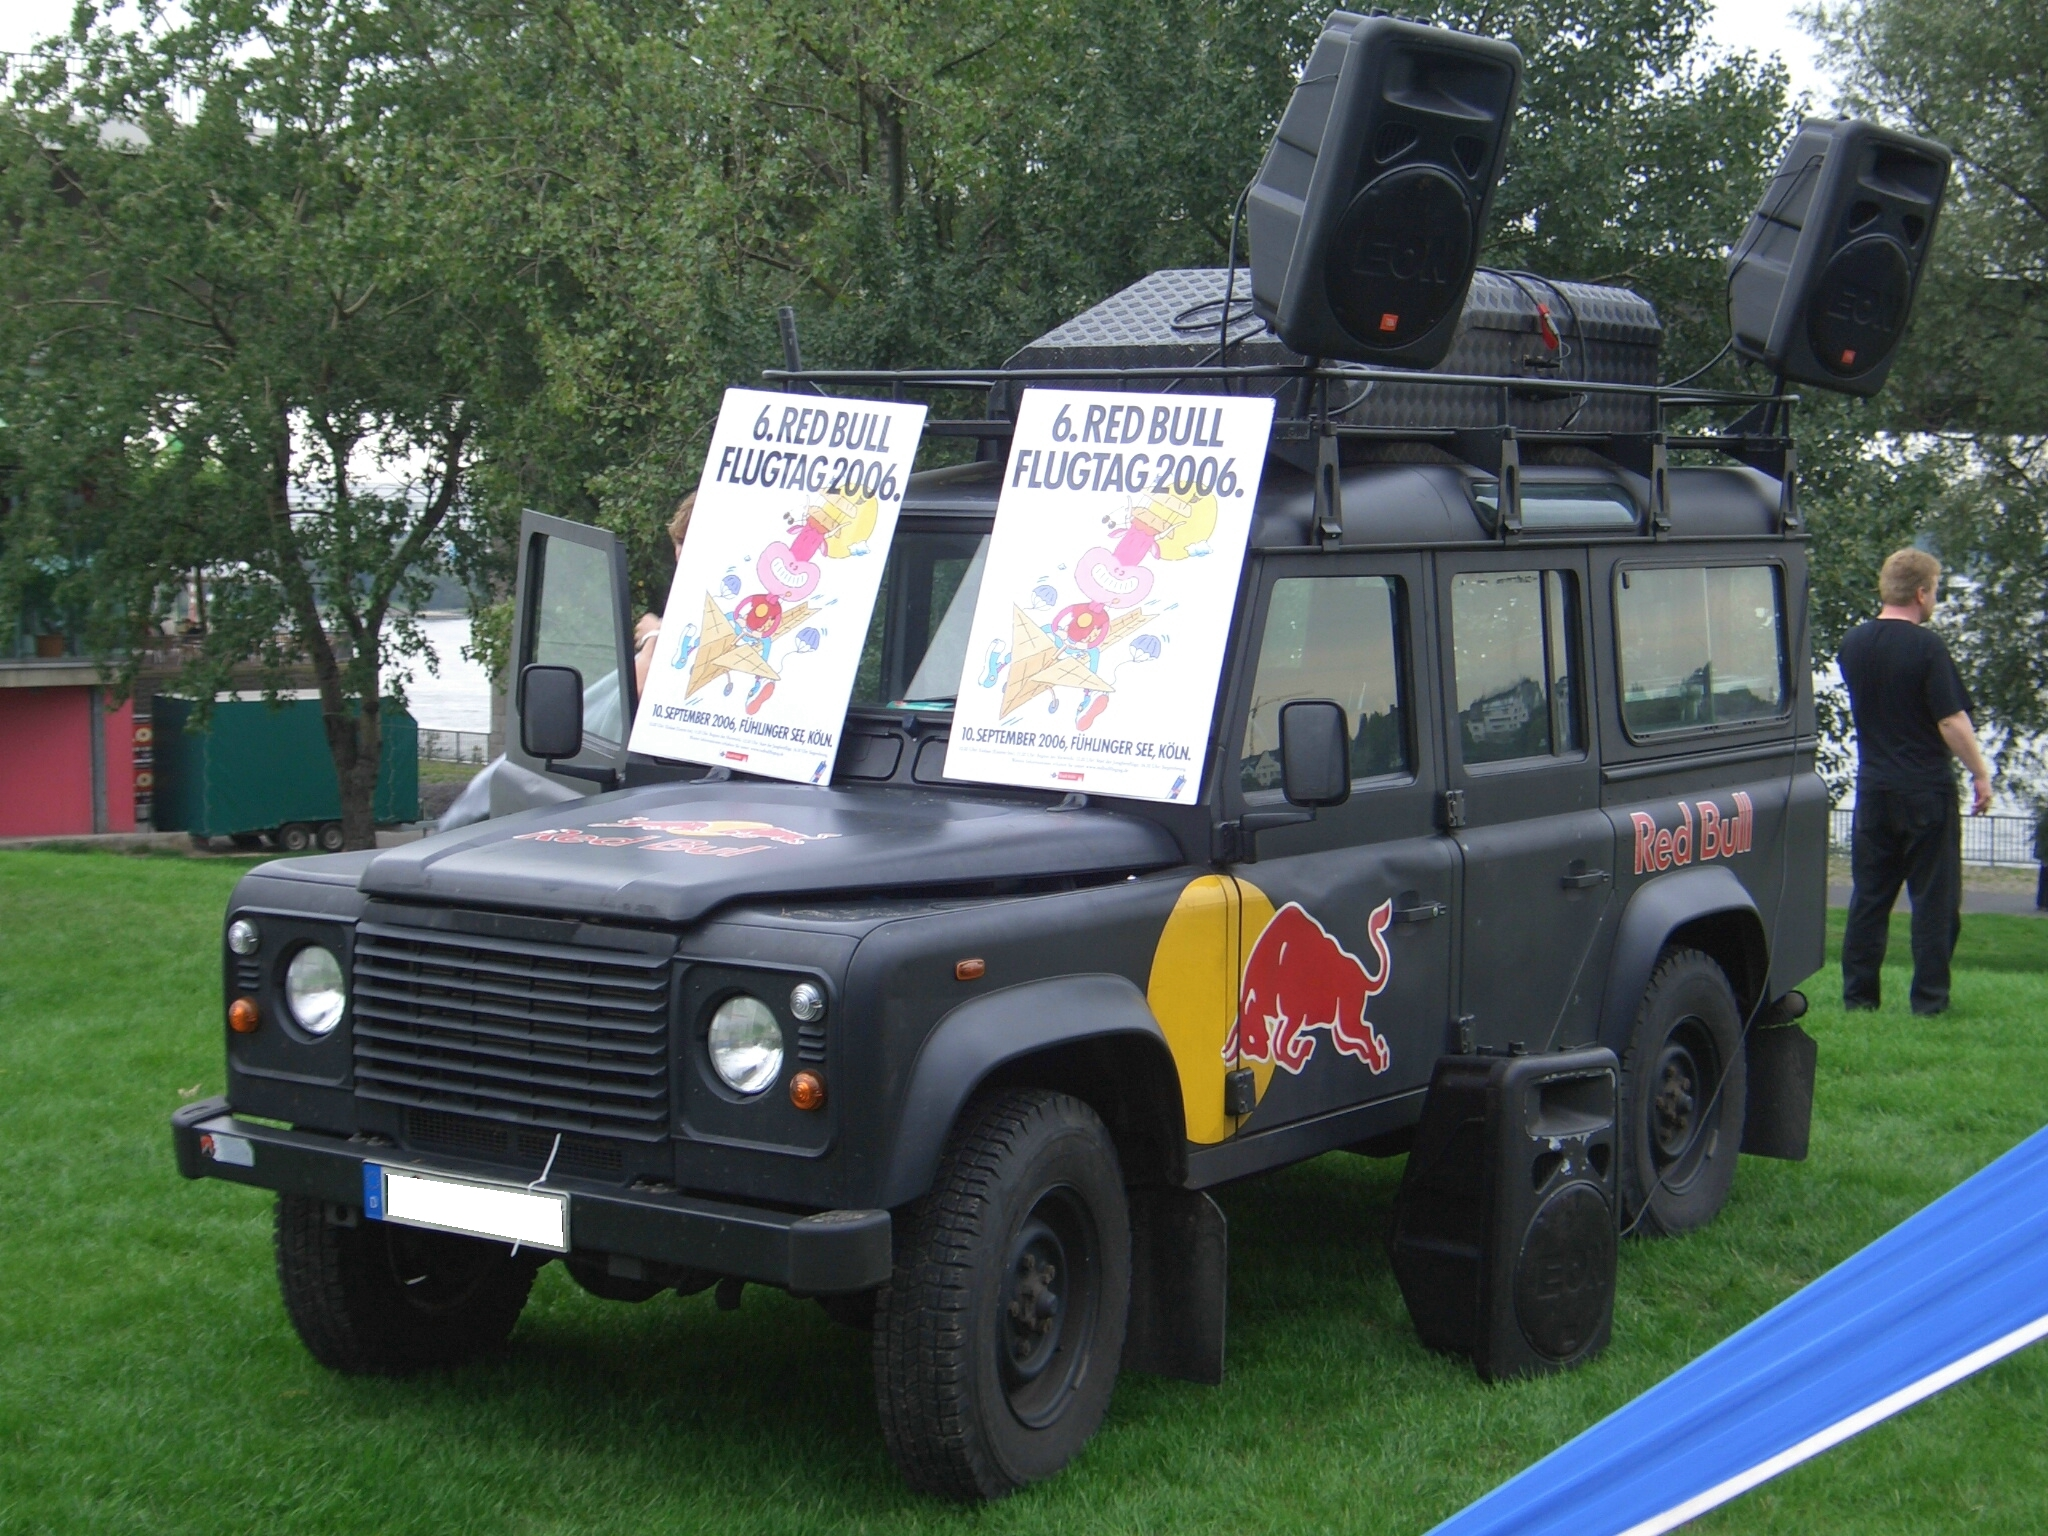 file land rover defender 110 redbull 60 jahre nrw fest duesseldorf frontleft 2006 08 26. Black Bedroom Furniture Sets. Home Design Ideas